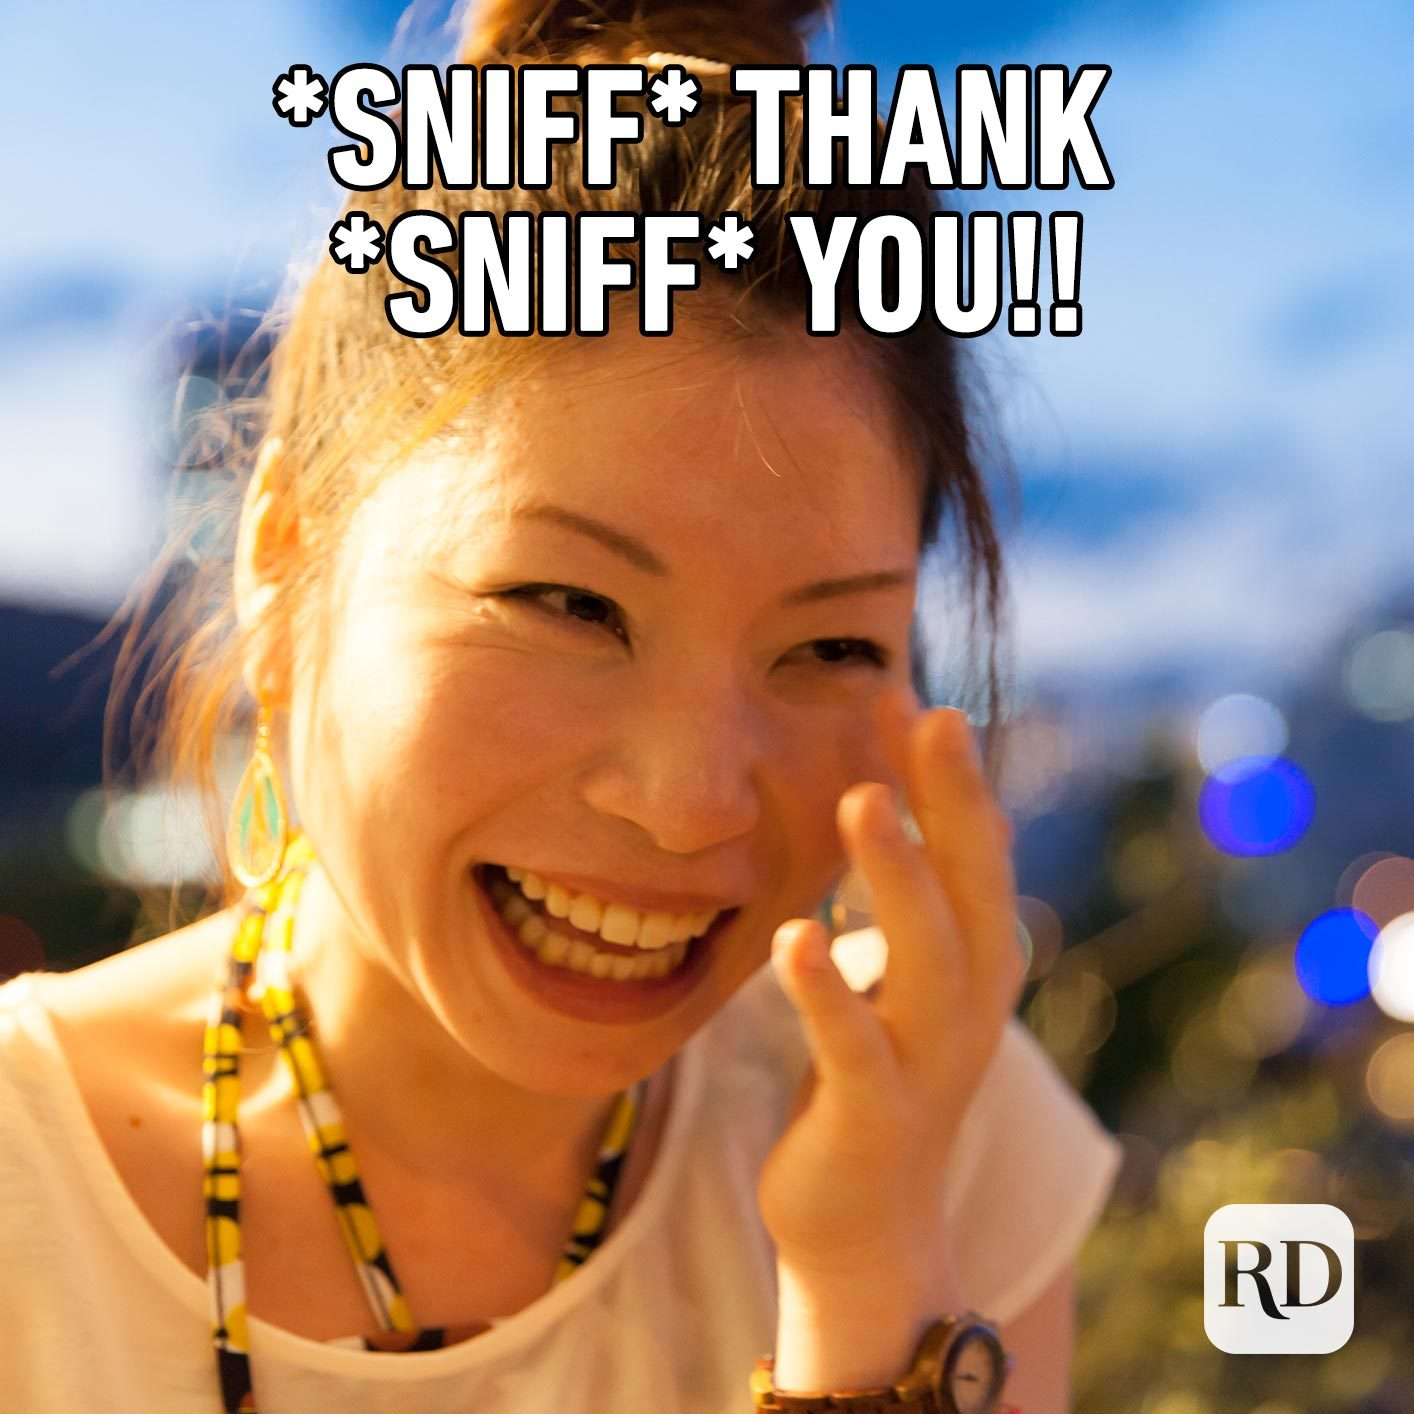 Woman crying happily. Meme text: *Sniff* Thank *Sniff* you!!